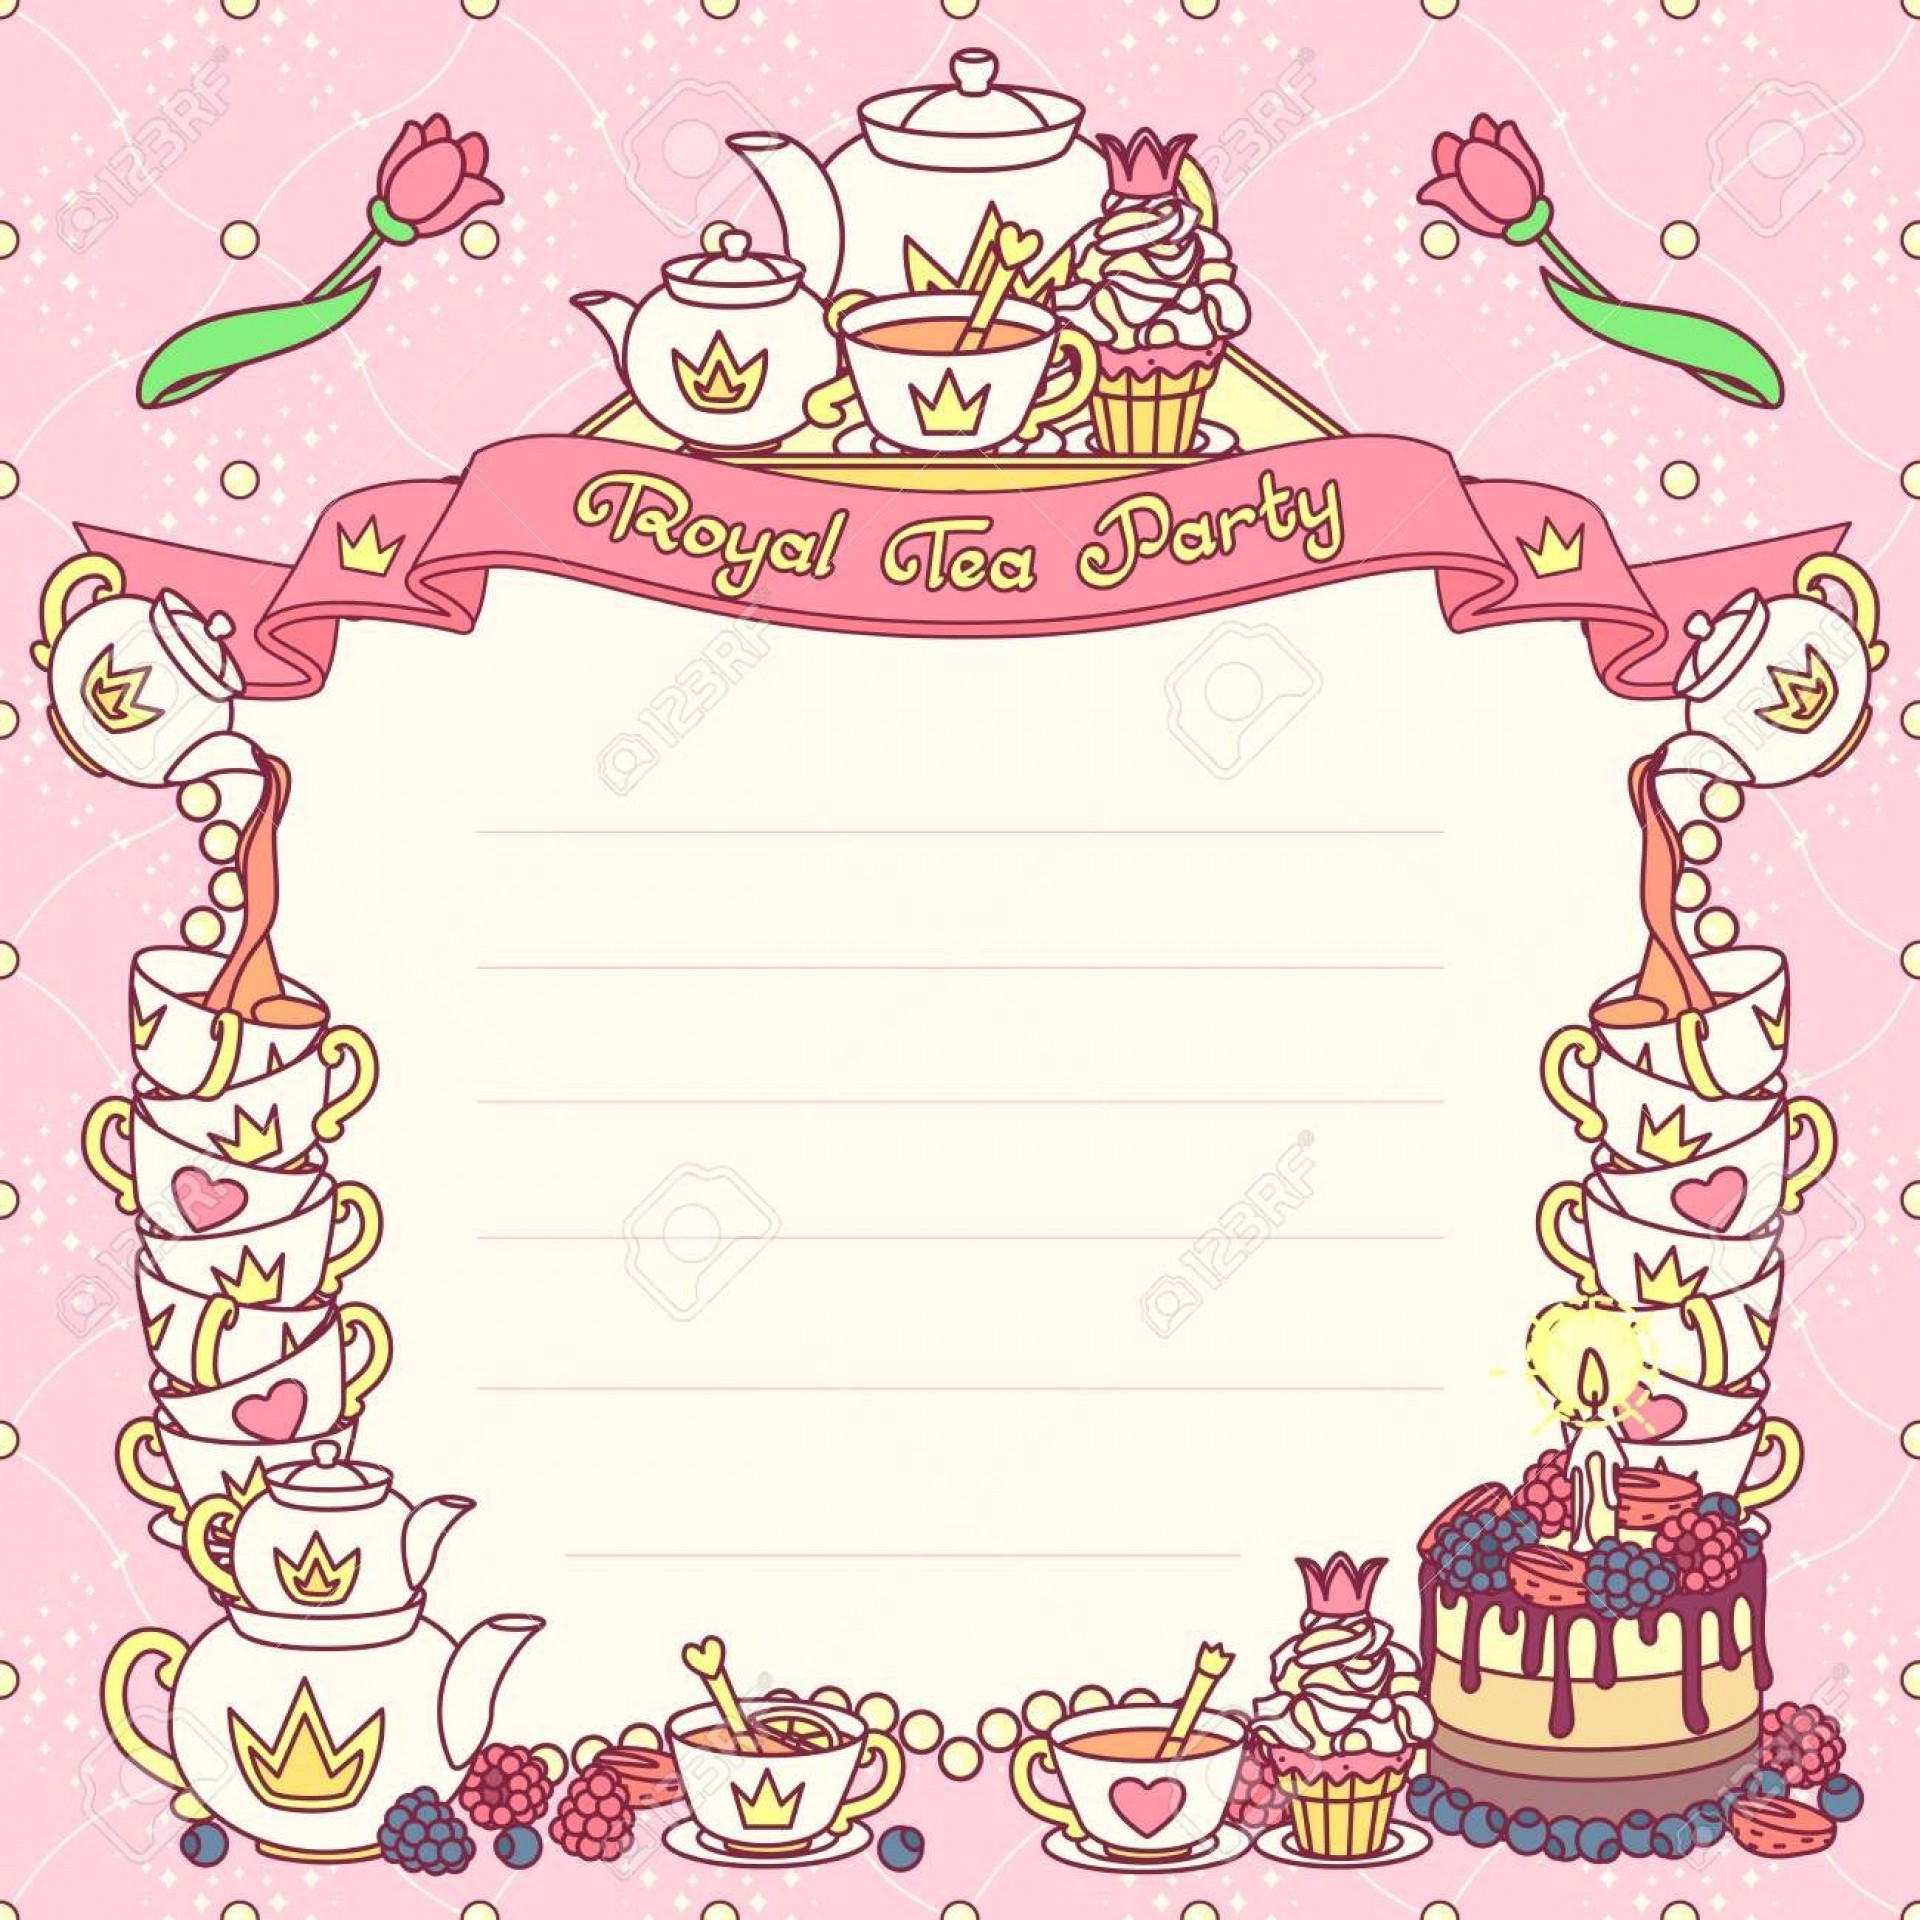 006 Sensational Tea Party Invitation Template Picture  Card Victorian Wording For Bridal Shower1920